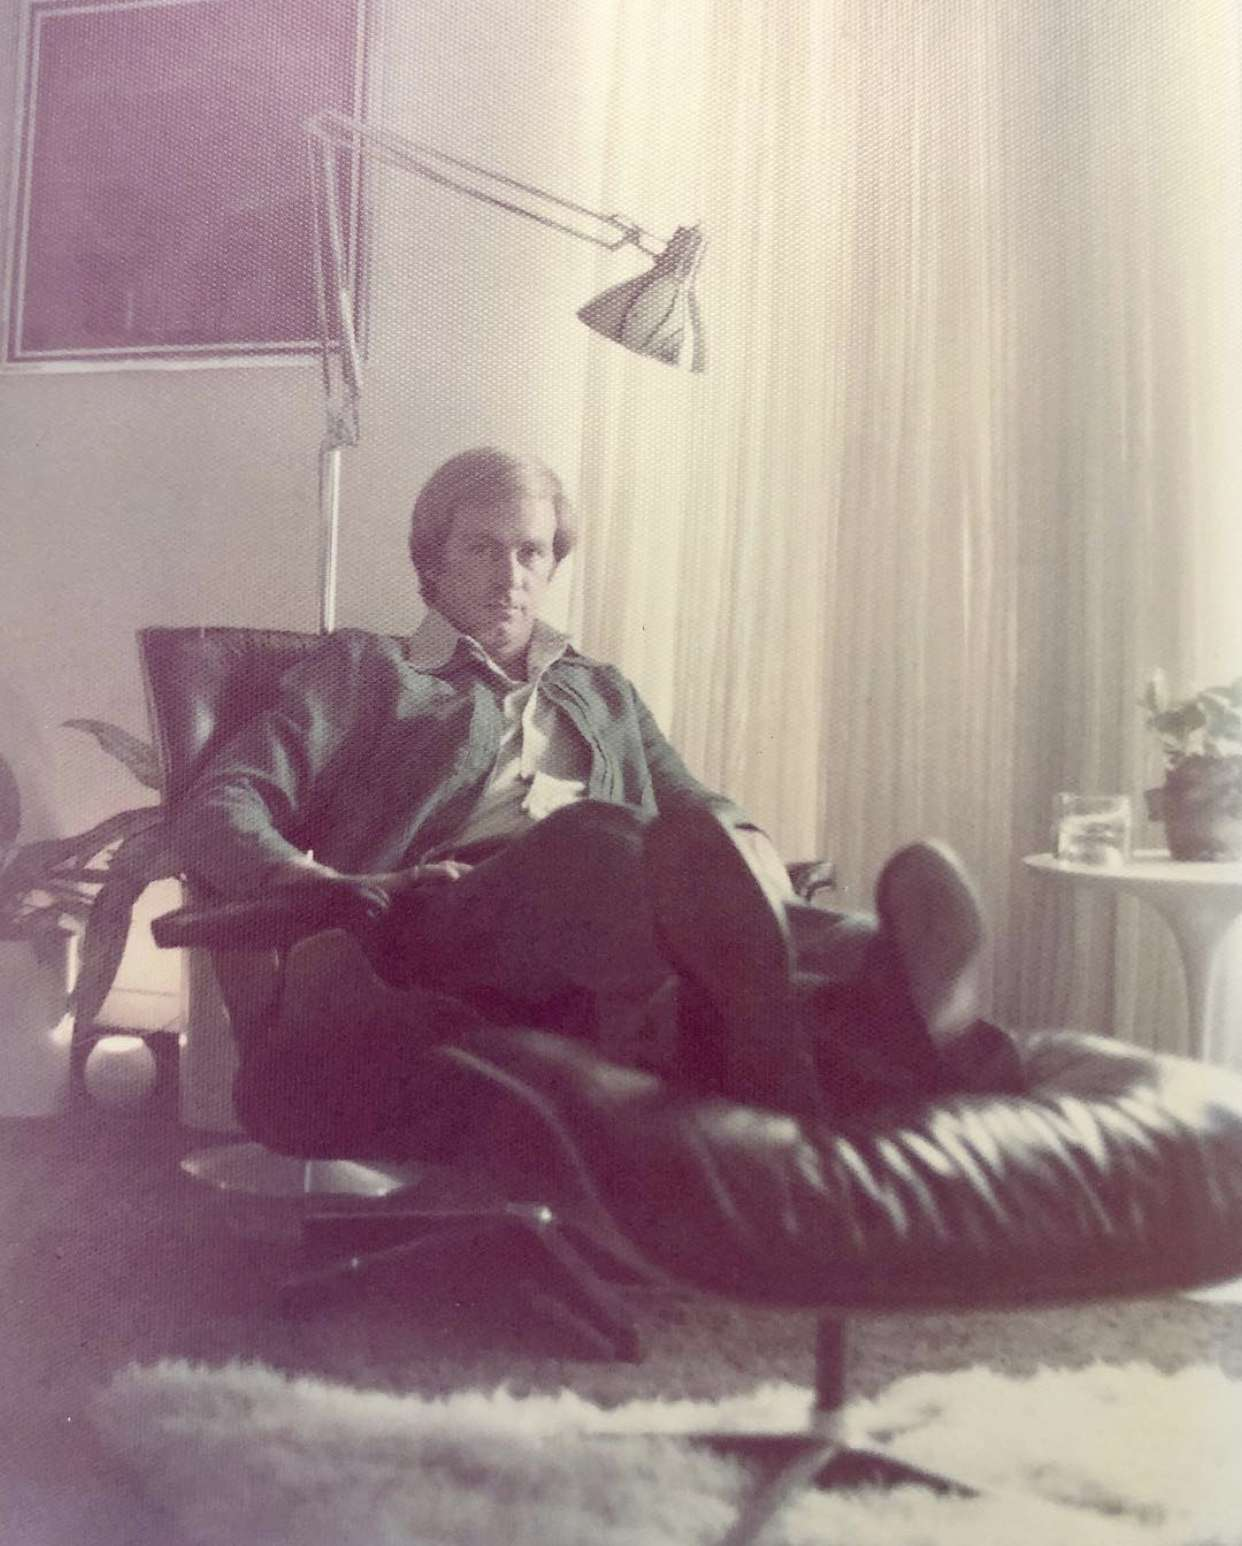 Kristen Nix's father poses in an authentic Eames lounge chair